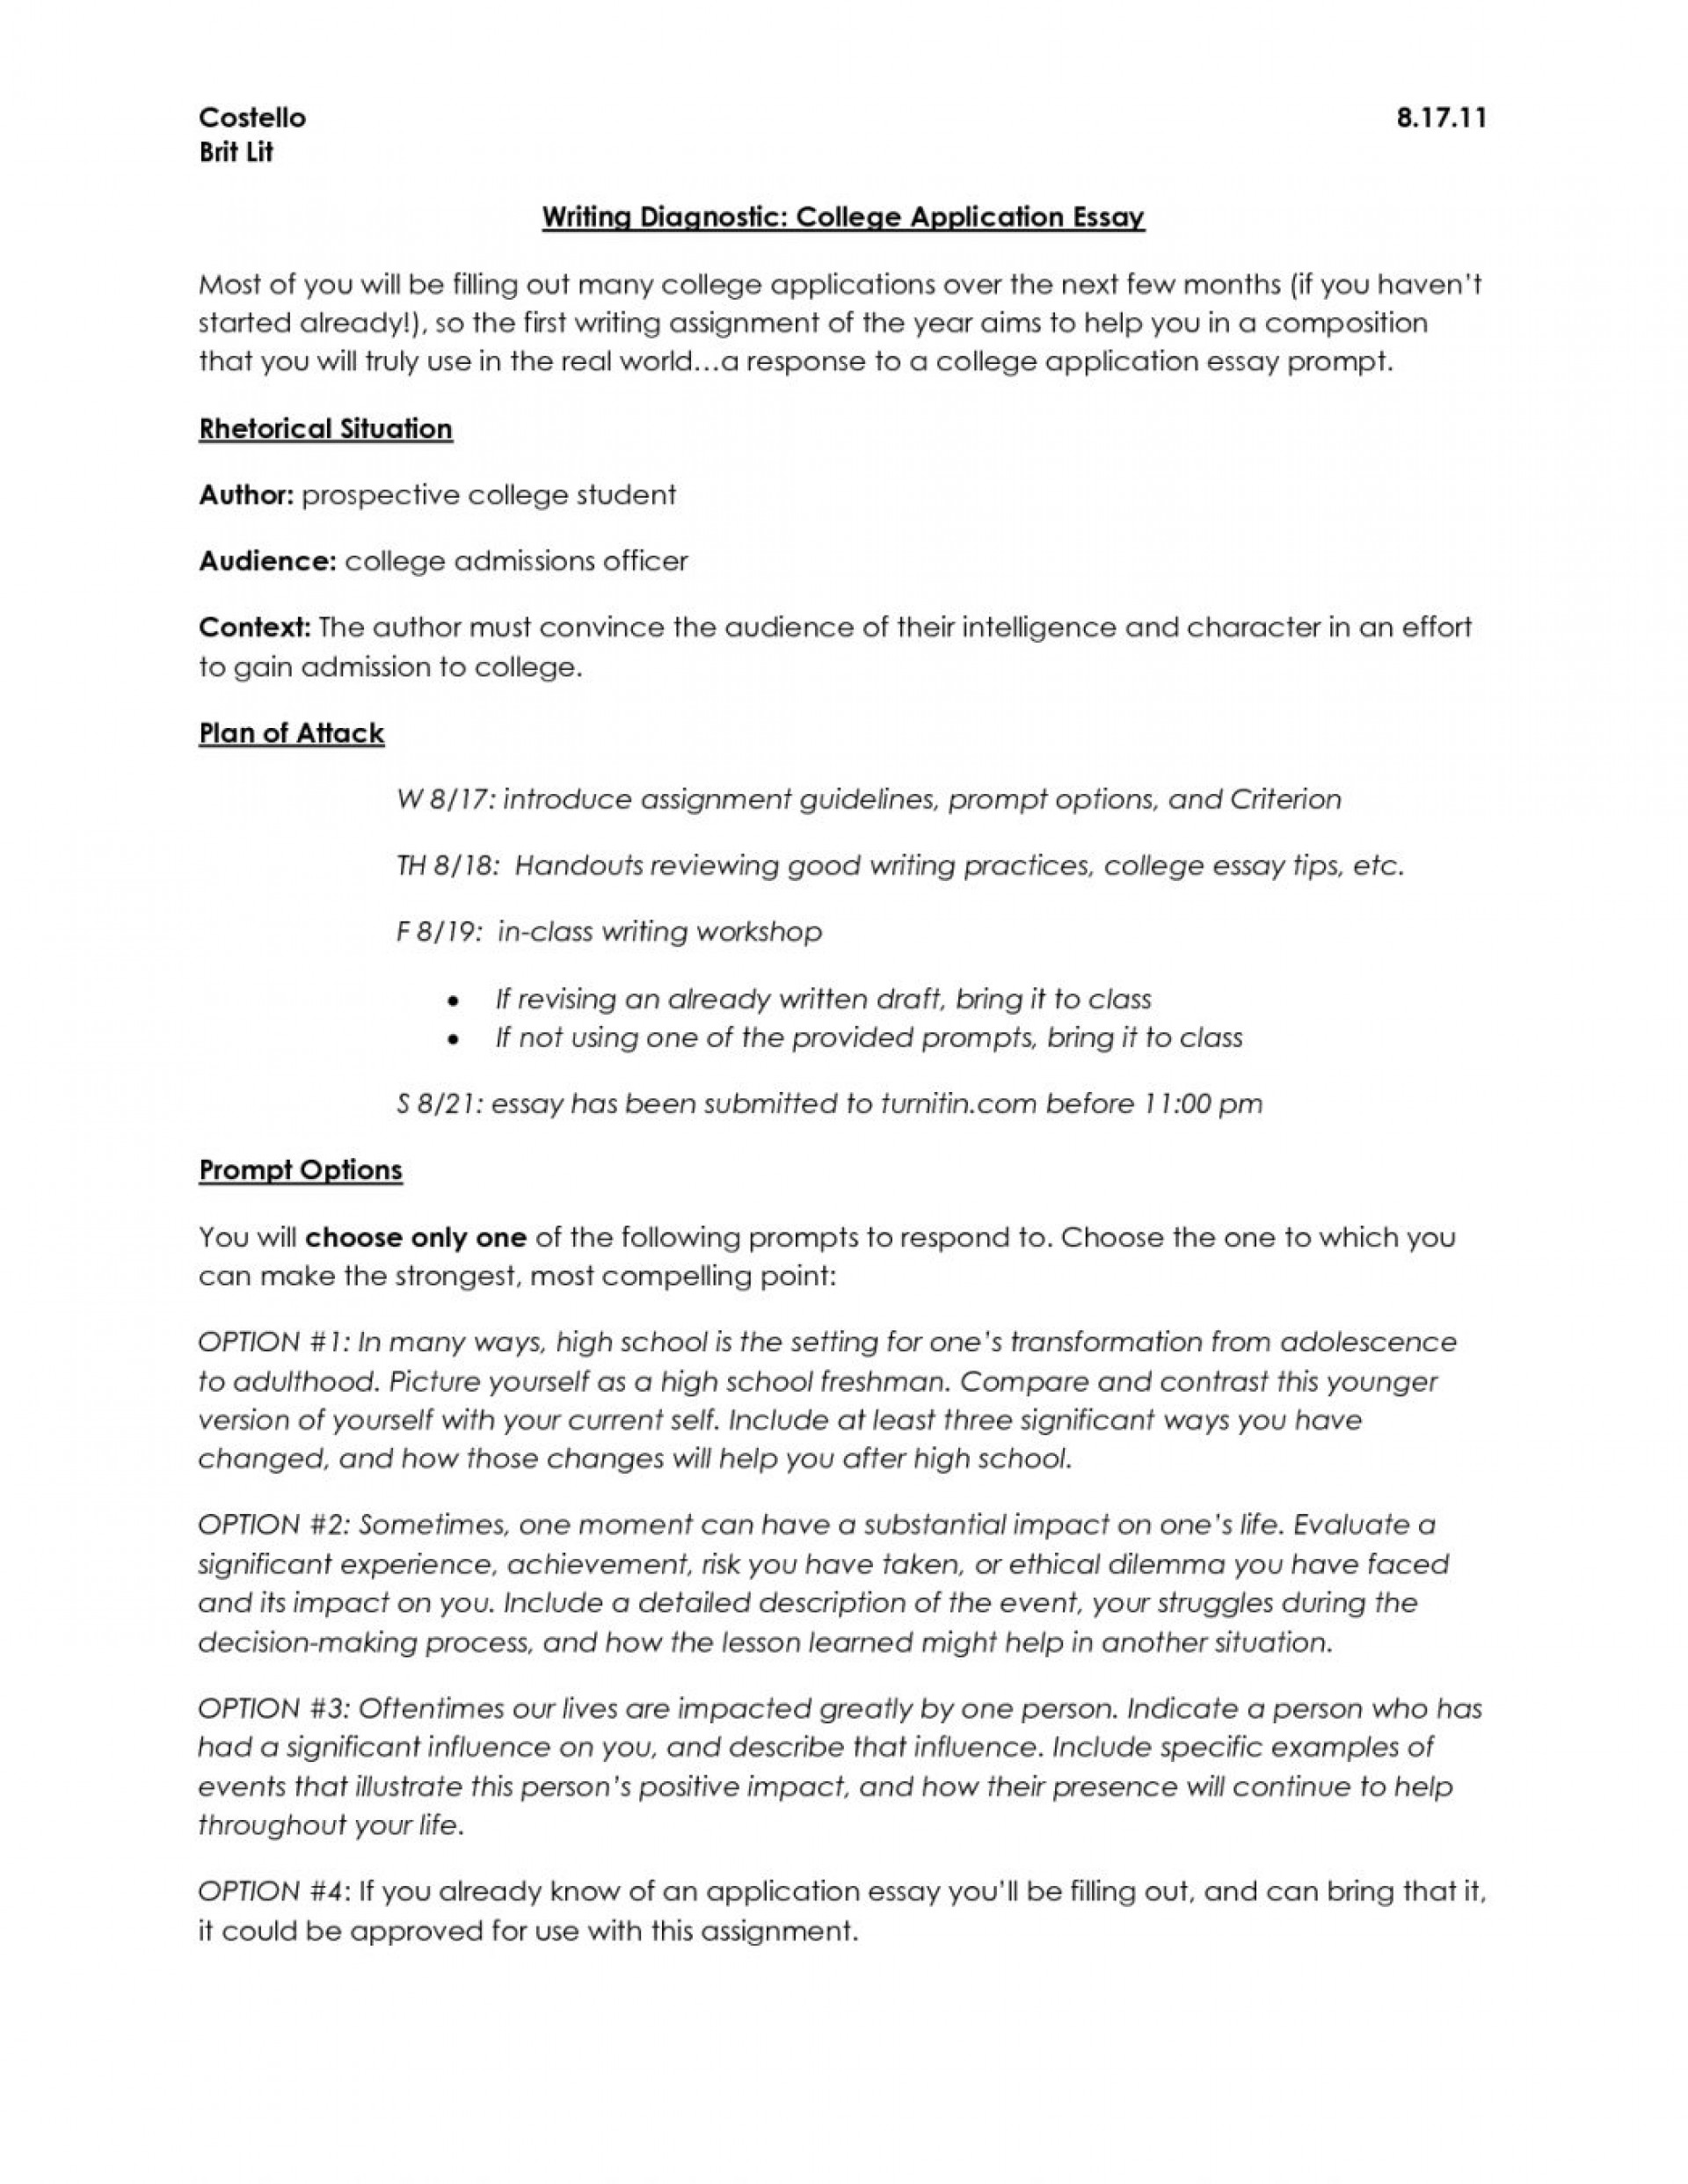 019 Essay Example College Examples Printables Corner Penn State Prompt Best Ideas Of Uf Application Rega Schreyer Honors Length Essays Stirring Samples Prompts 2017 Uc 1920